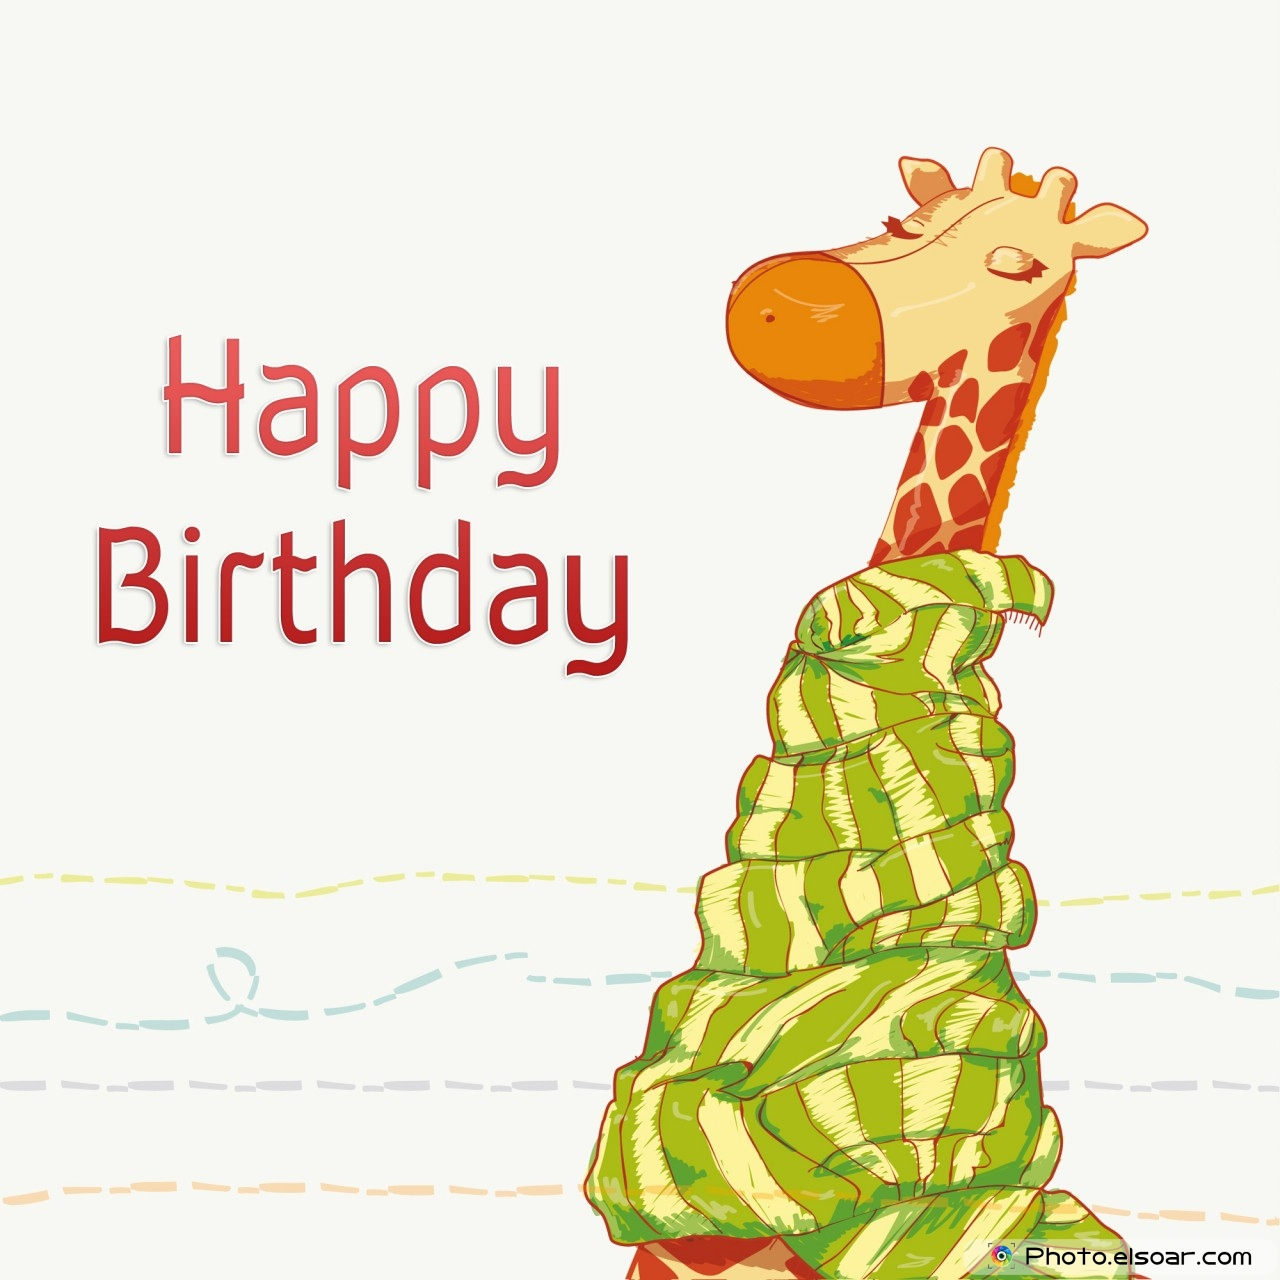 Beautiful Happy Birthday Greeting Cards With Giraffes, Pet • Elsoar